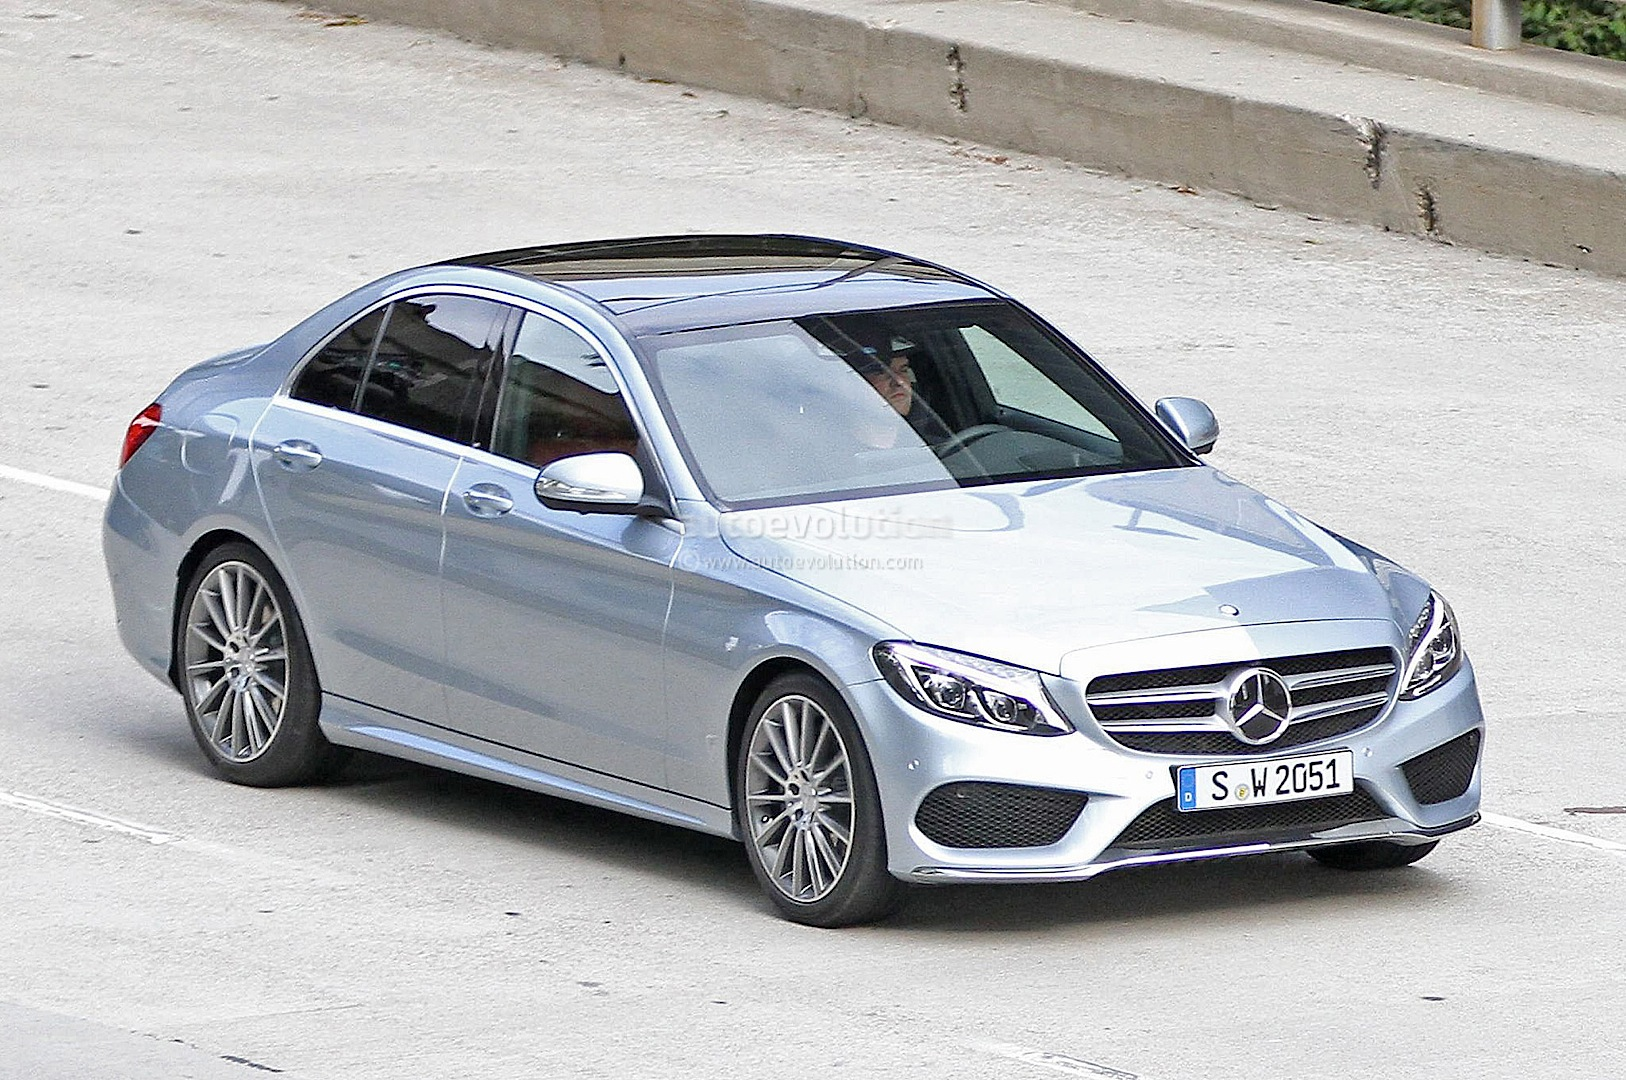 2015 mercedes benz c 180 w205 versus 2014 c 180 w204 for How much are mercedes benz